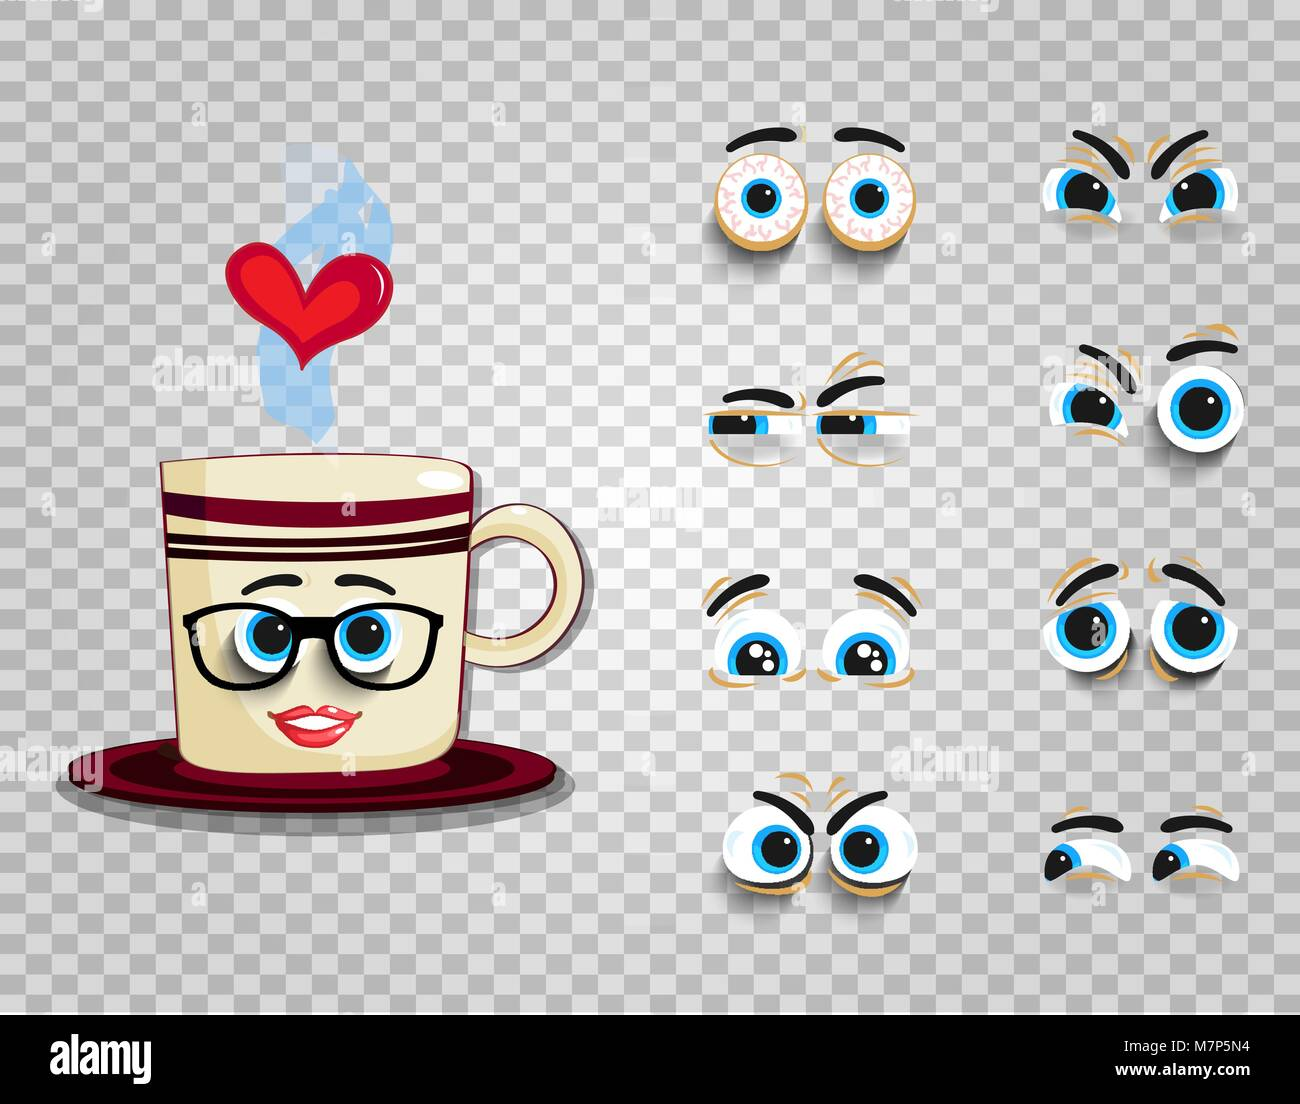 Emoji Set Of Cute Cartoon Cup With Changeable Eyes Collection Stock Vector Image Art Alamy